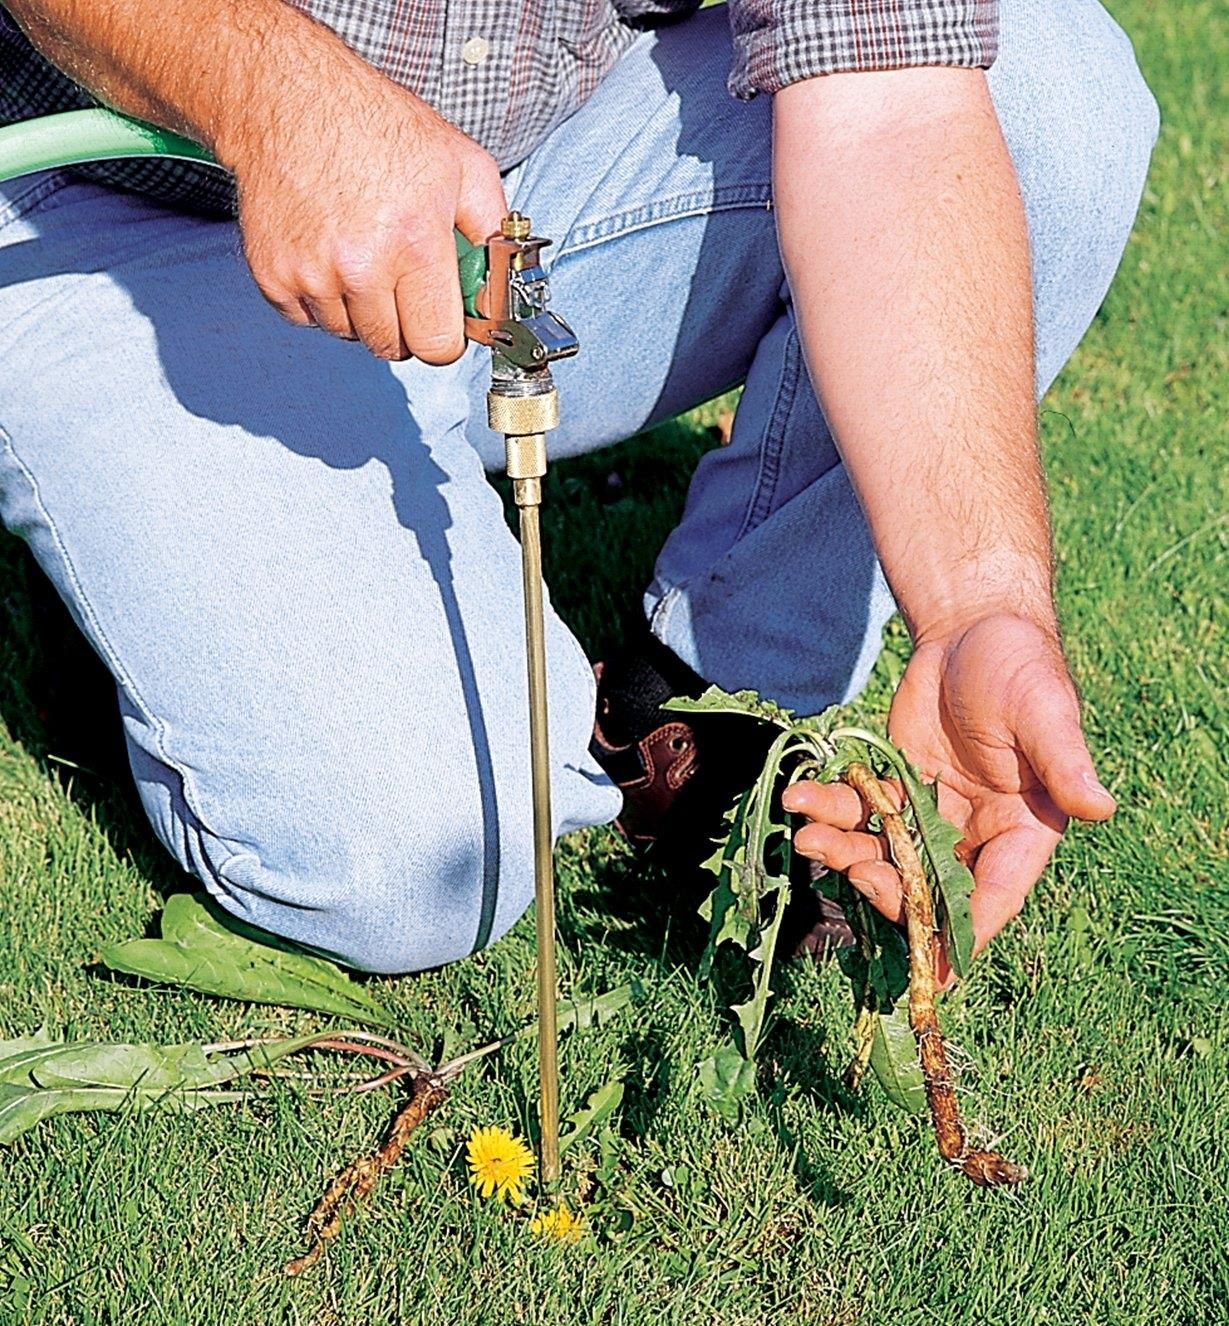 A man kneeling on a lawn holds the water-powered weeder and a dandelion he has removed with root intact